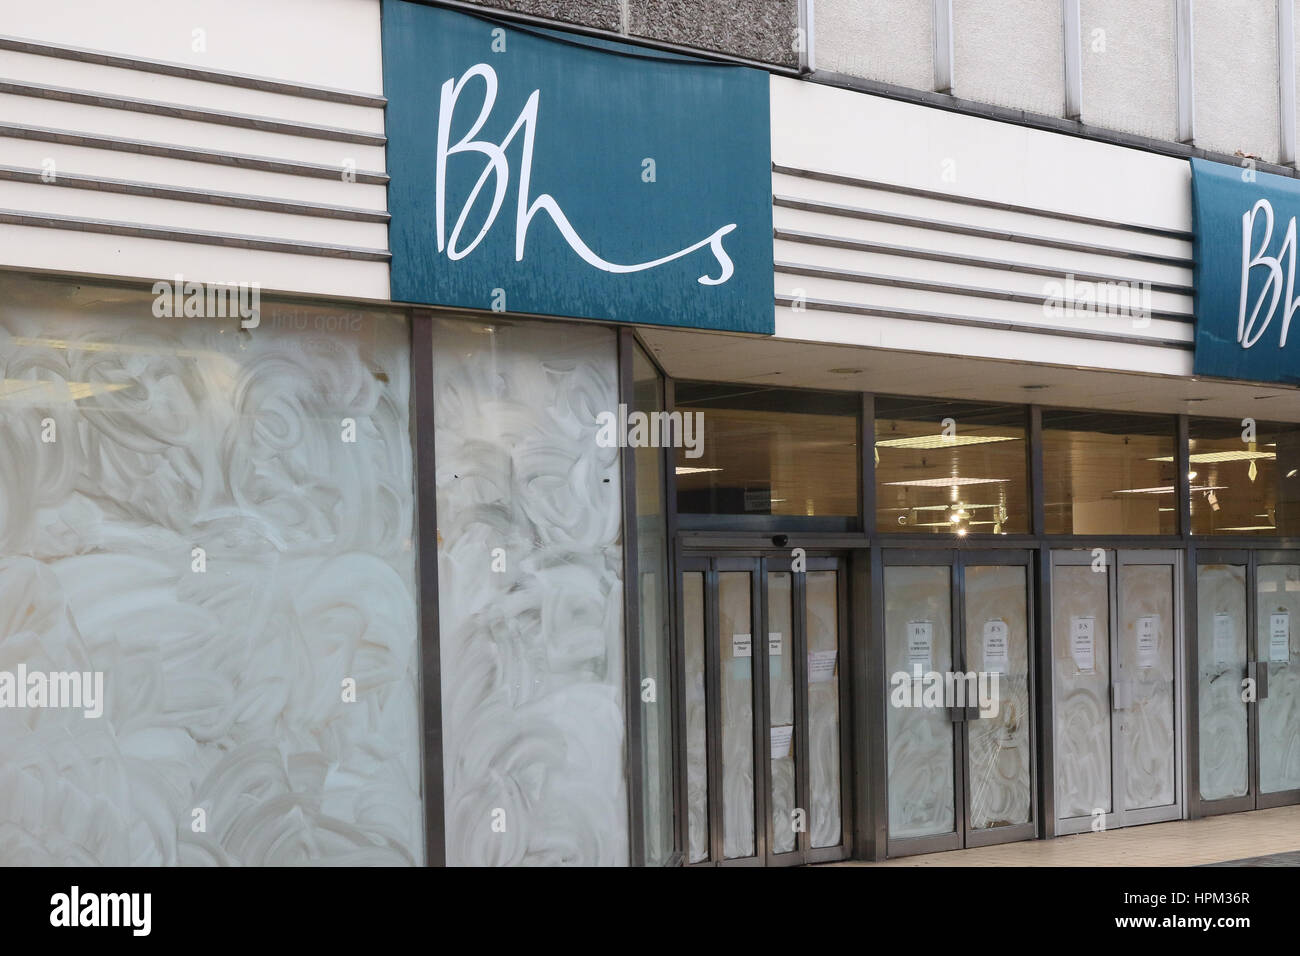 Fomer British Home Stores (BHS) premises in the centre of Belfast, Northern Ireland. - Stock Image